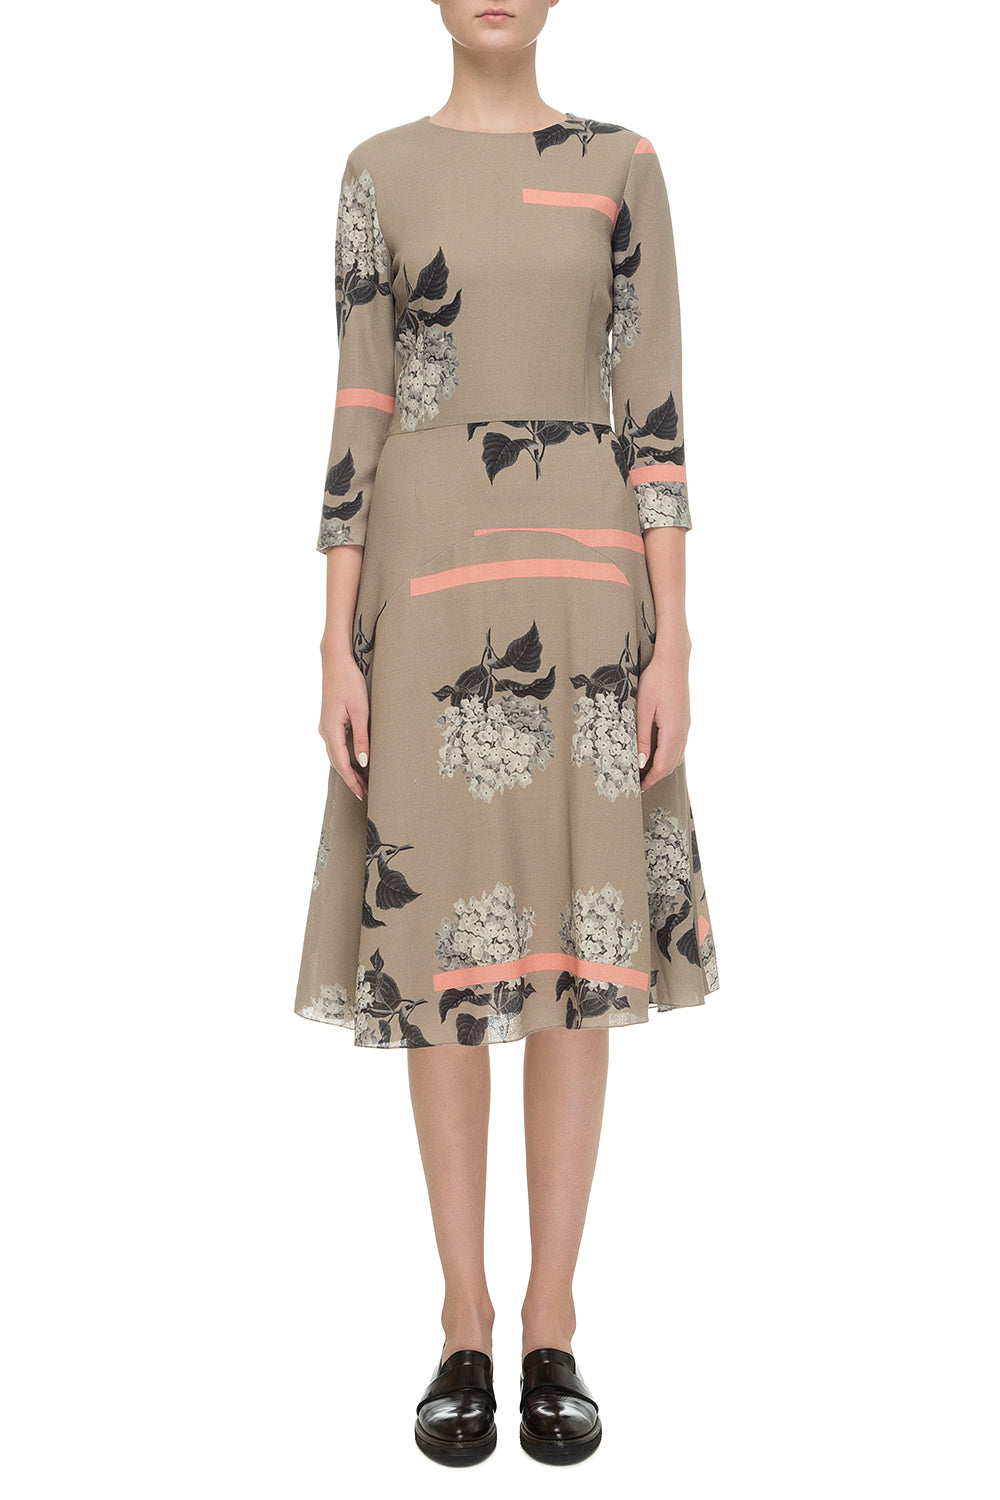 Beige printed dress